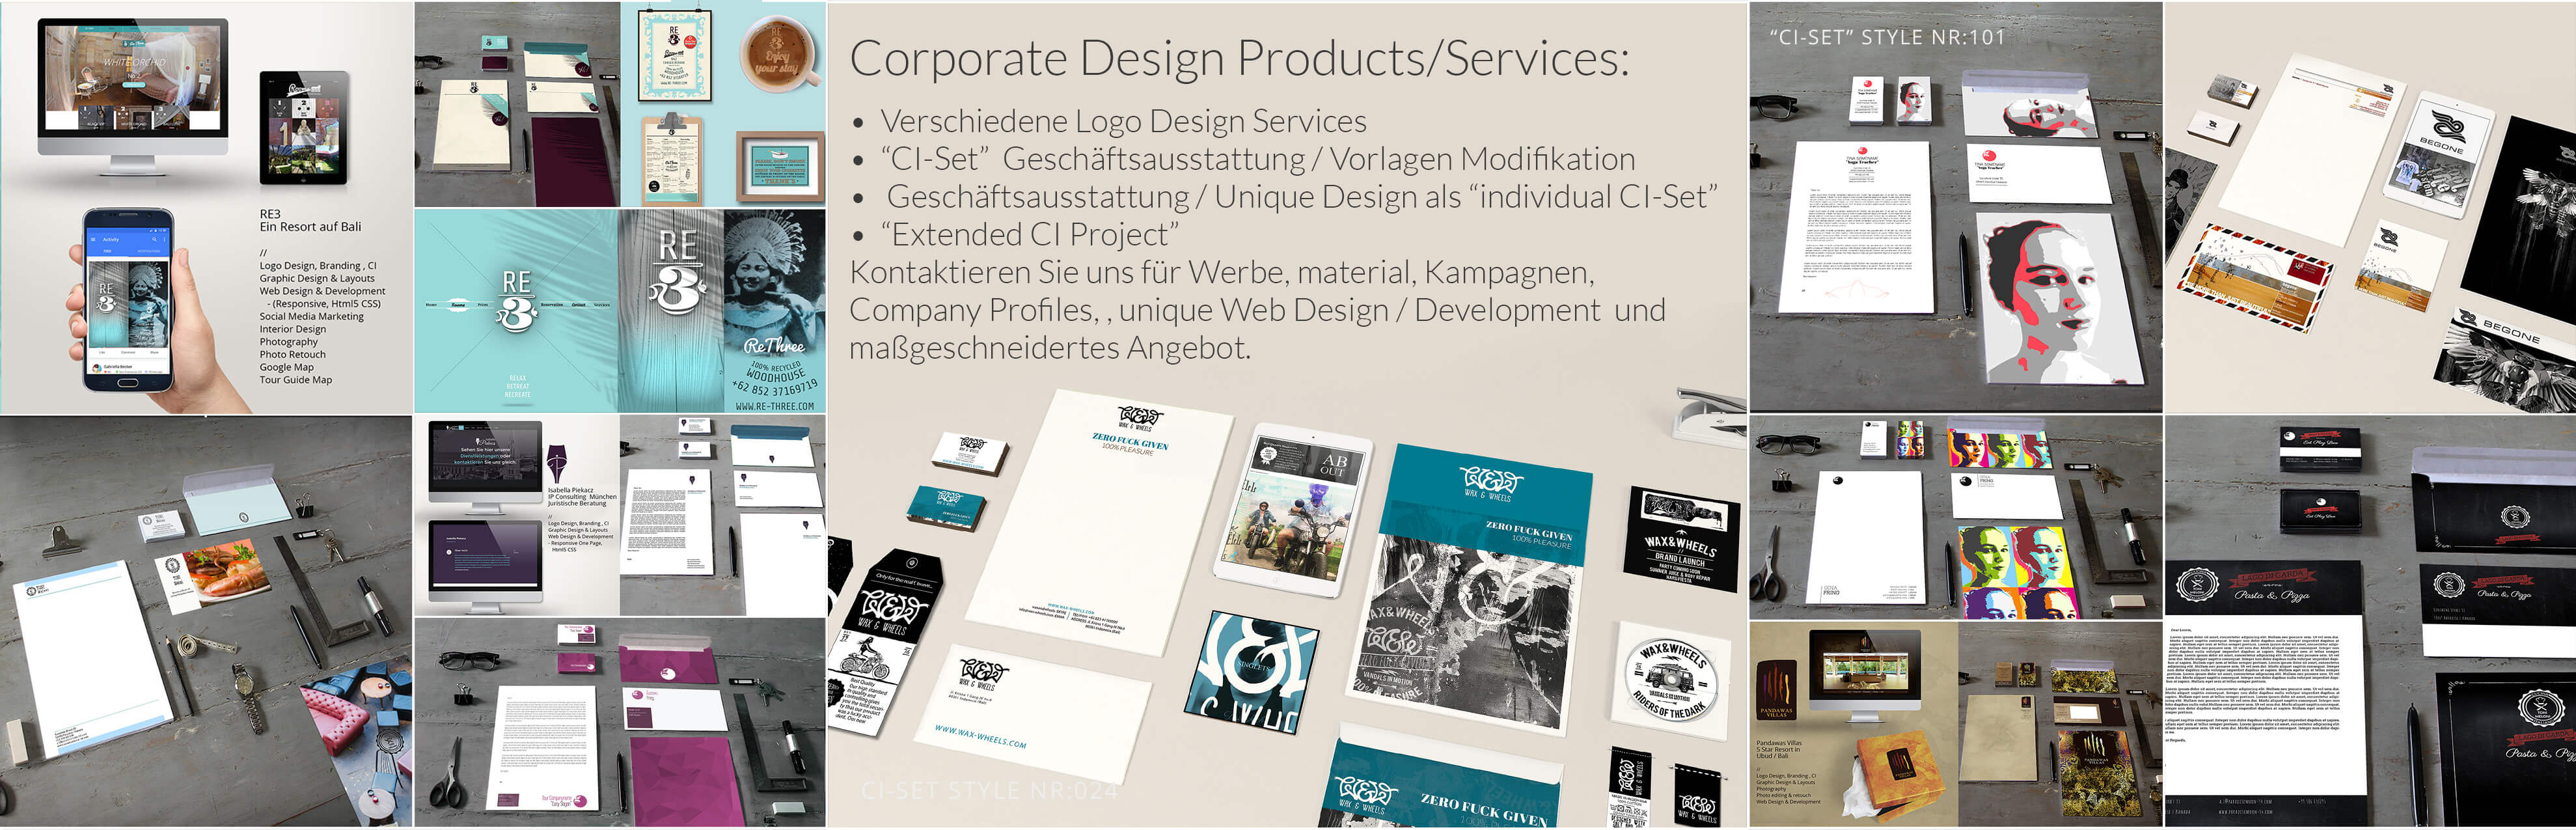 slider ci corporate identity logo typo sign branding de 3 web txt